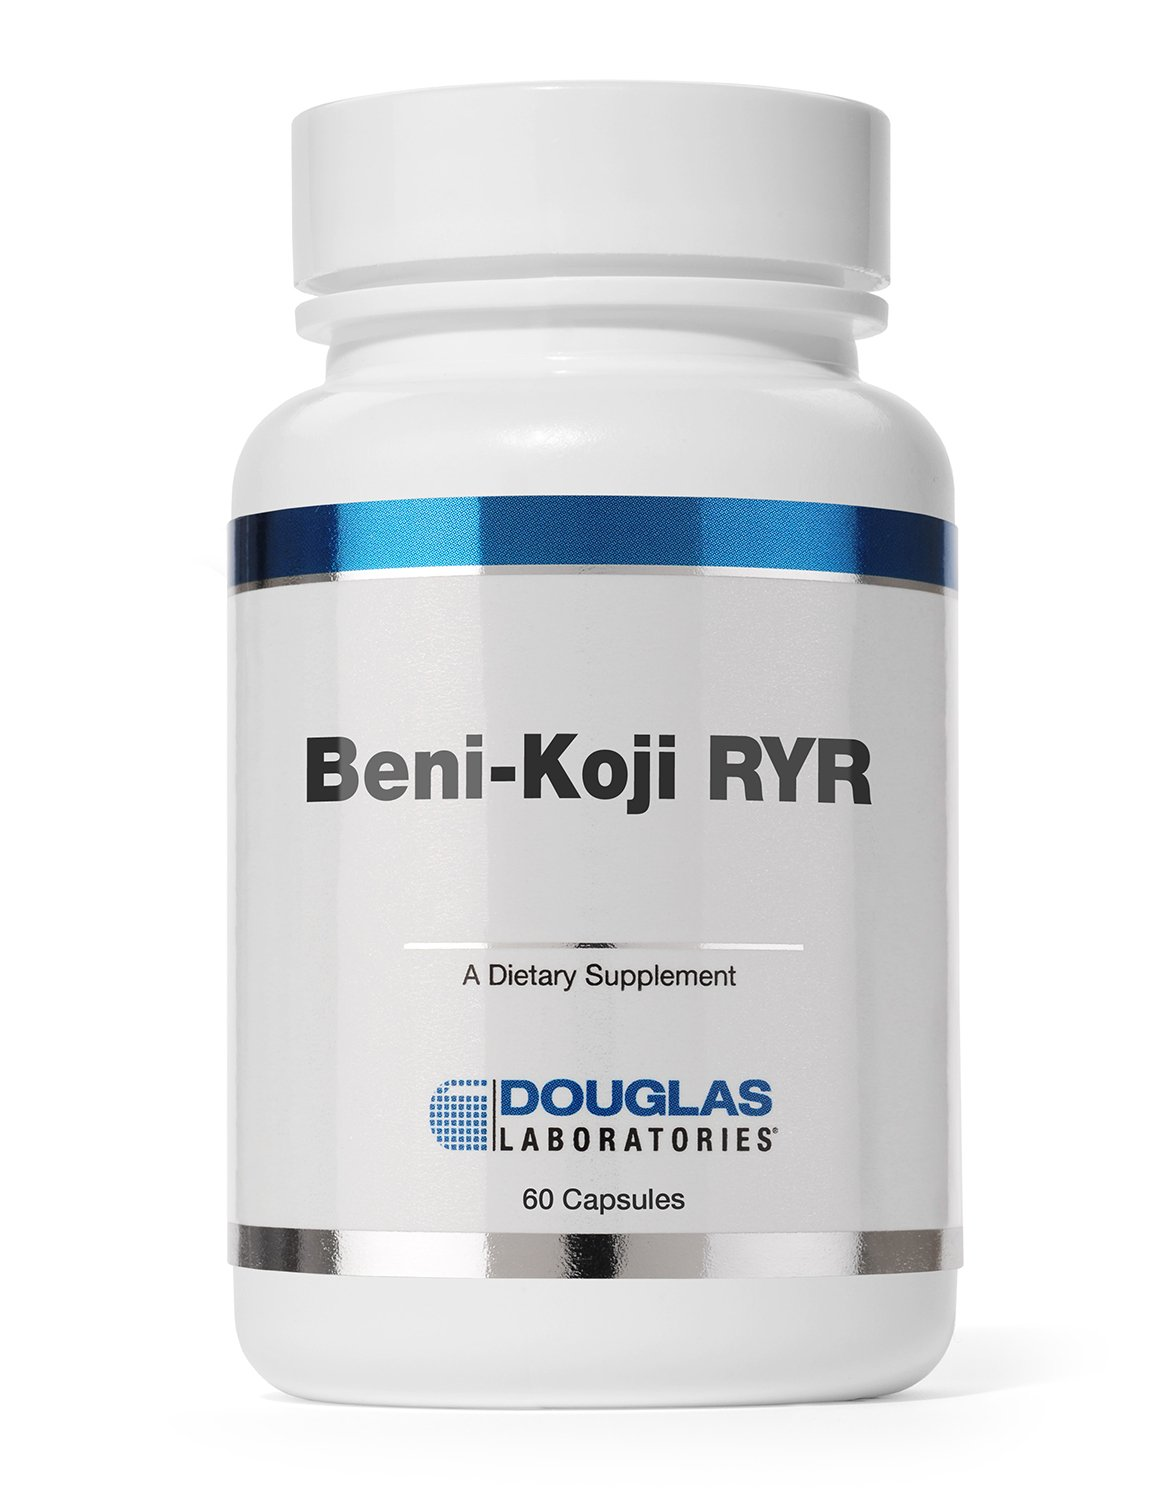 Douglas Laboratories - Beni Koji Red Yeast Rice - Fermented Red Yeast Rice to Support Healthy Blood Lipid Levels* - 120 Capsules